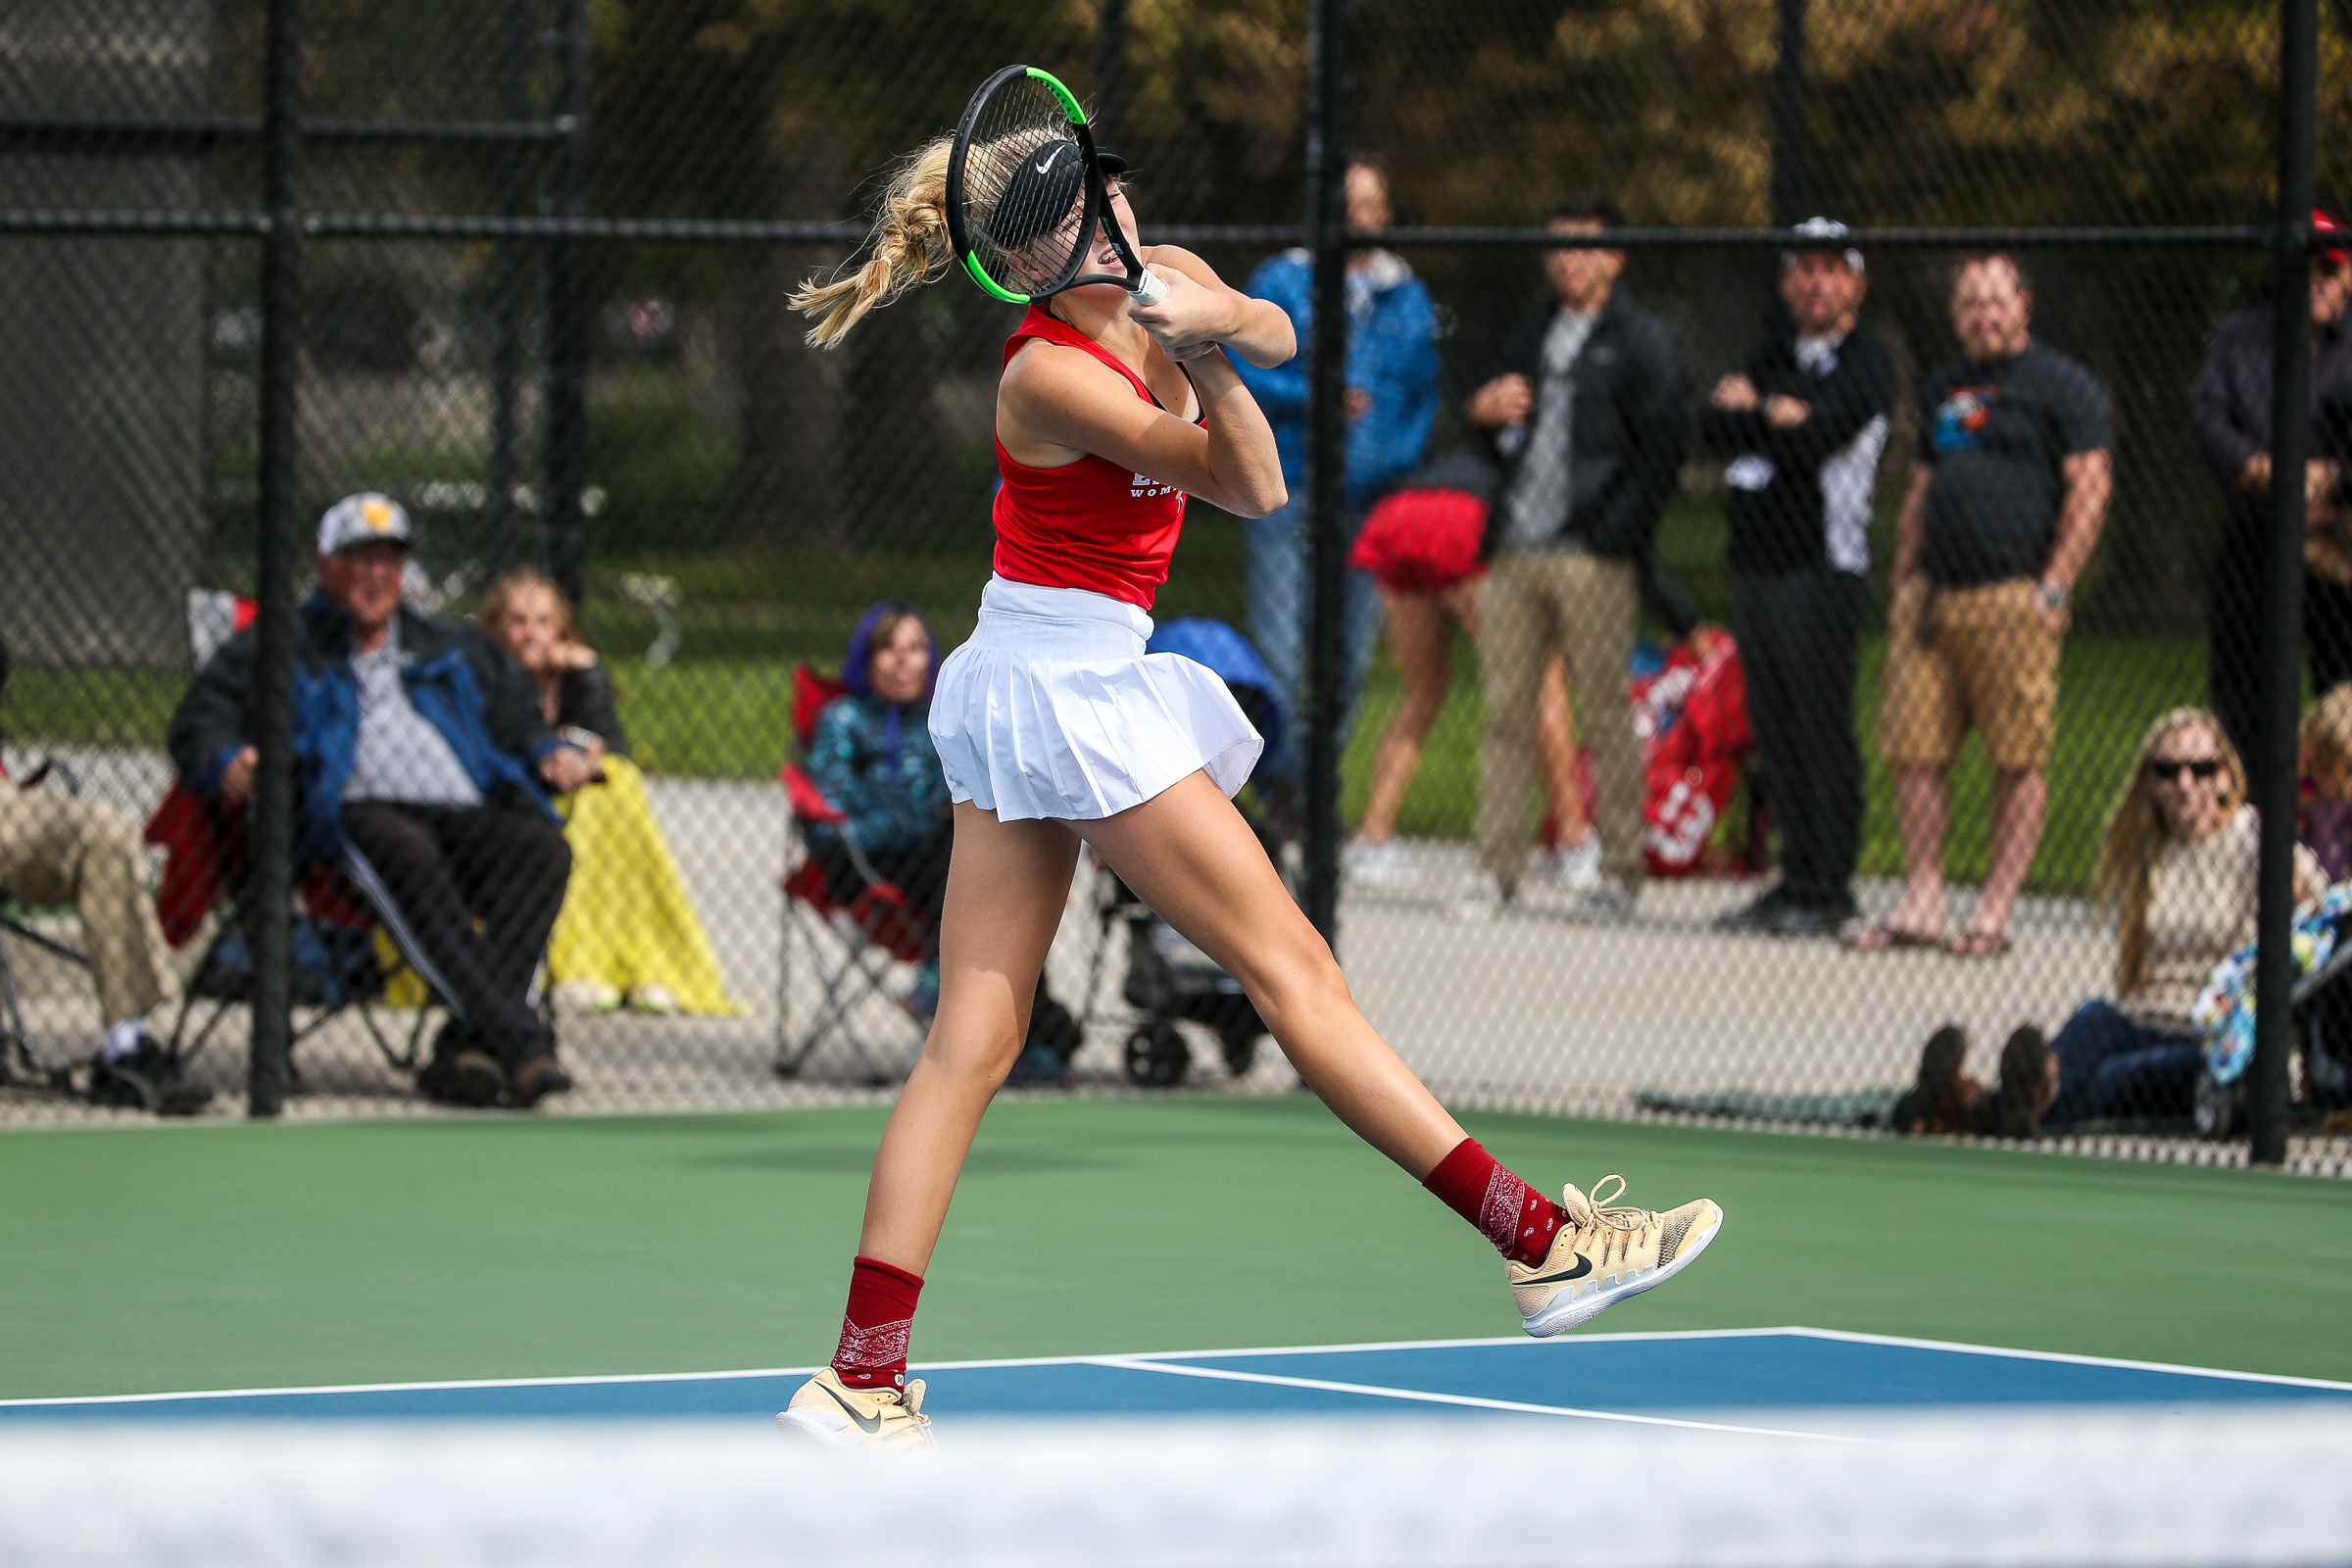 East's Emmie Moore competes in the No. 1 singles championship match against Alta's Emilee Astle during the 5A state tennis tournament at the Liberty Park Tennis Center in Salt Lake City on Saturday, Oct. 6, 2018.